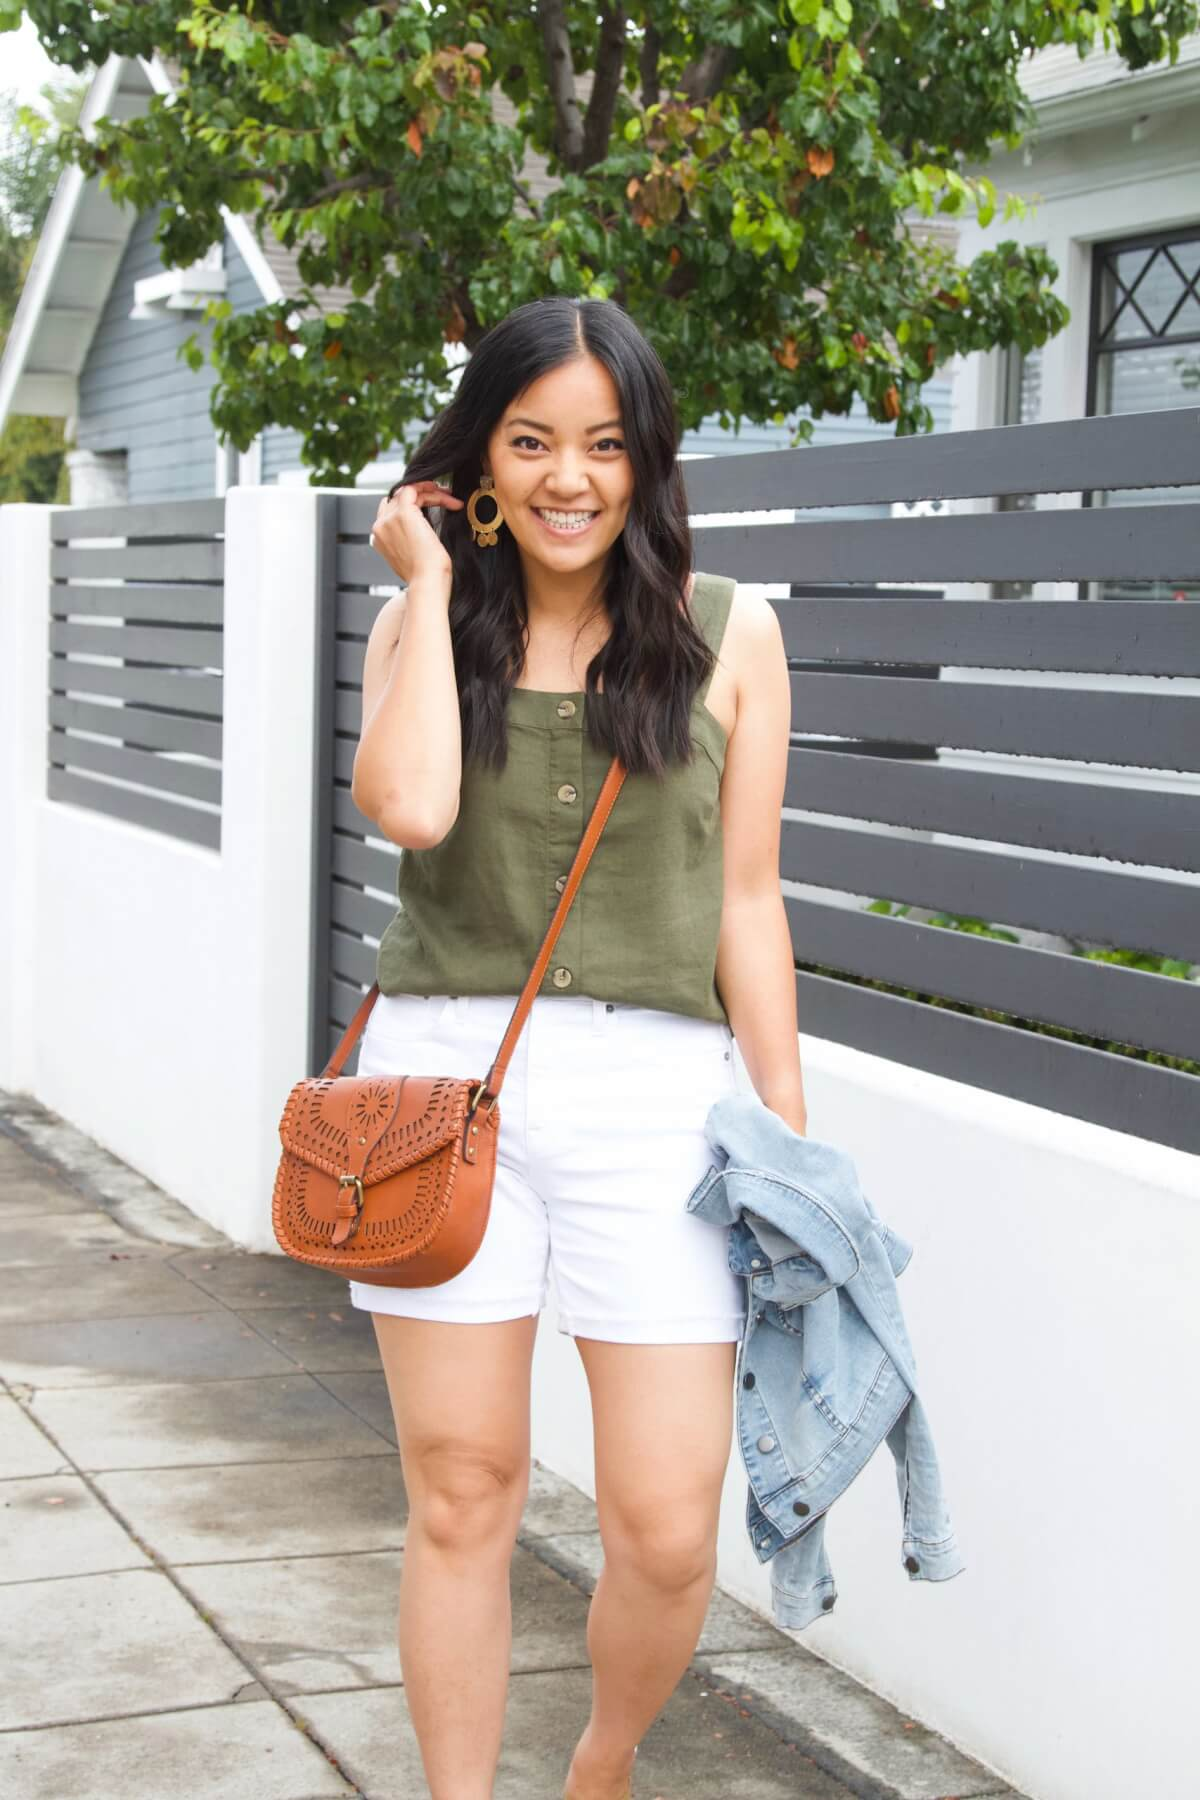 Dressy Casual Summer Outfit: olive button down linen sleeveless top + white shorts + denim jacket + gold dangly earrings + cognac crossbody bag